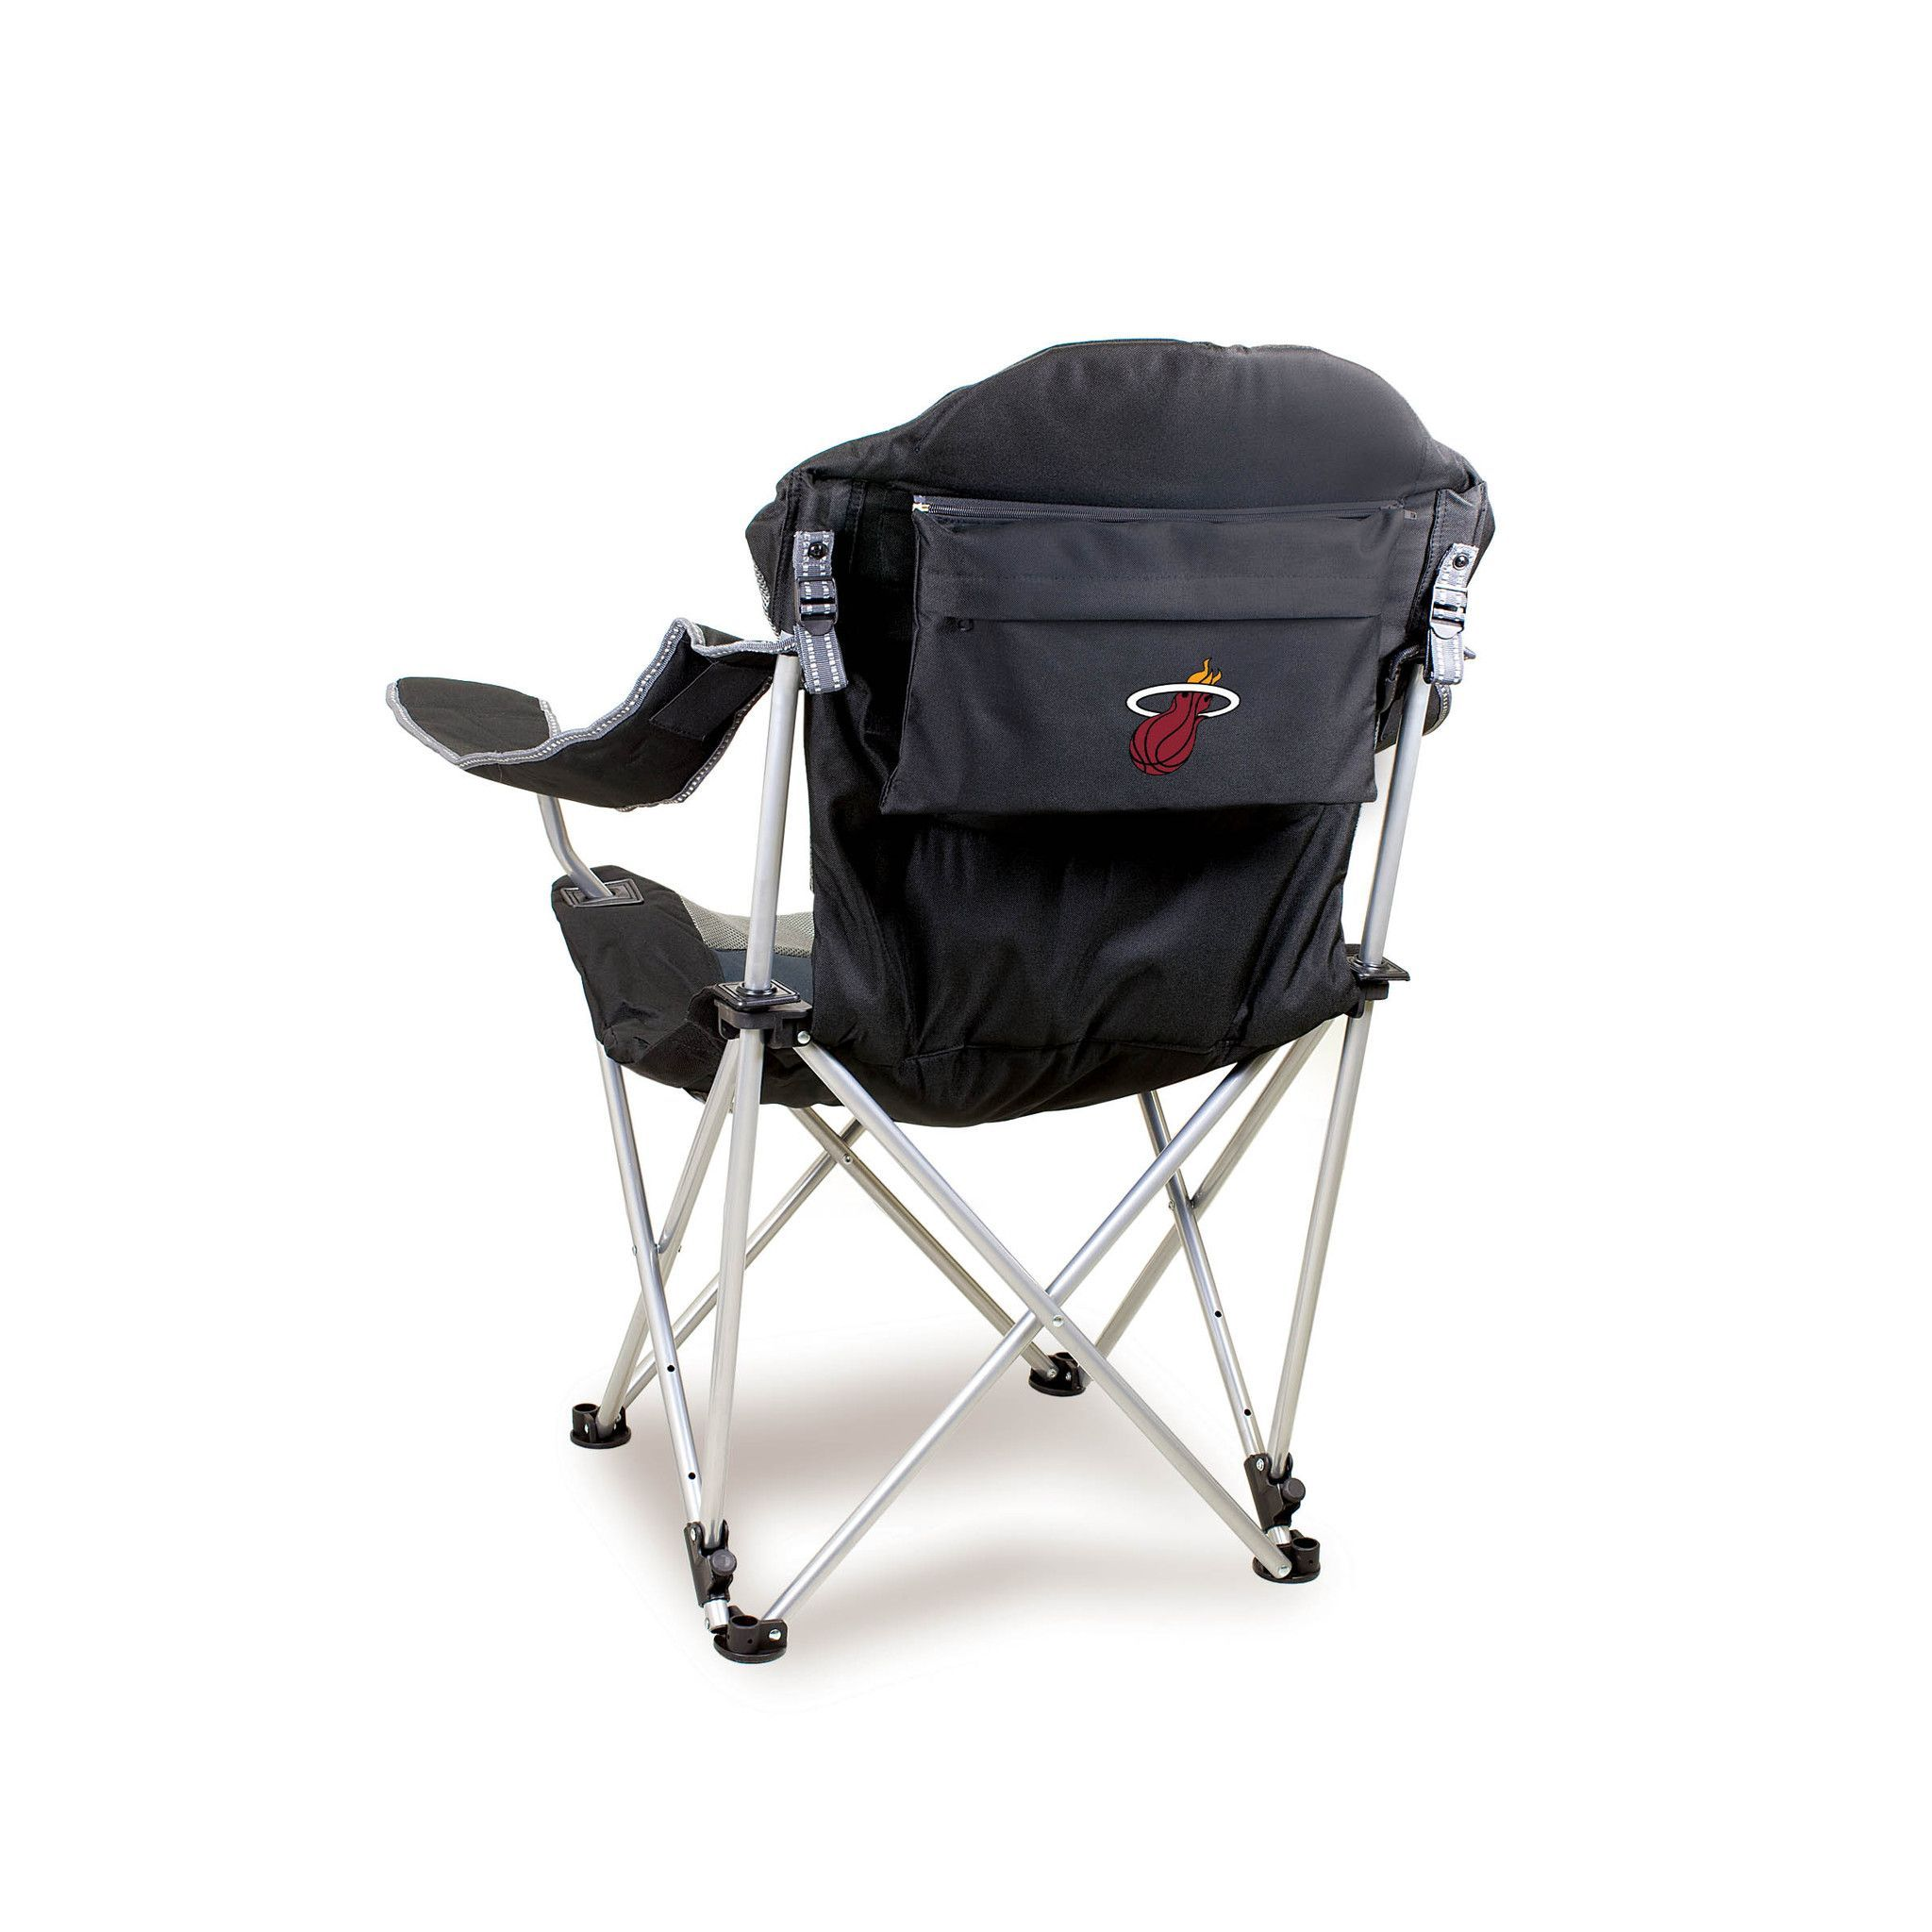 The Miami Heat Reclining Camp Chair